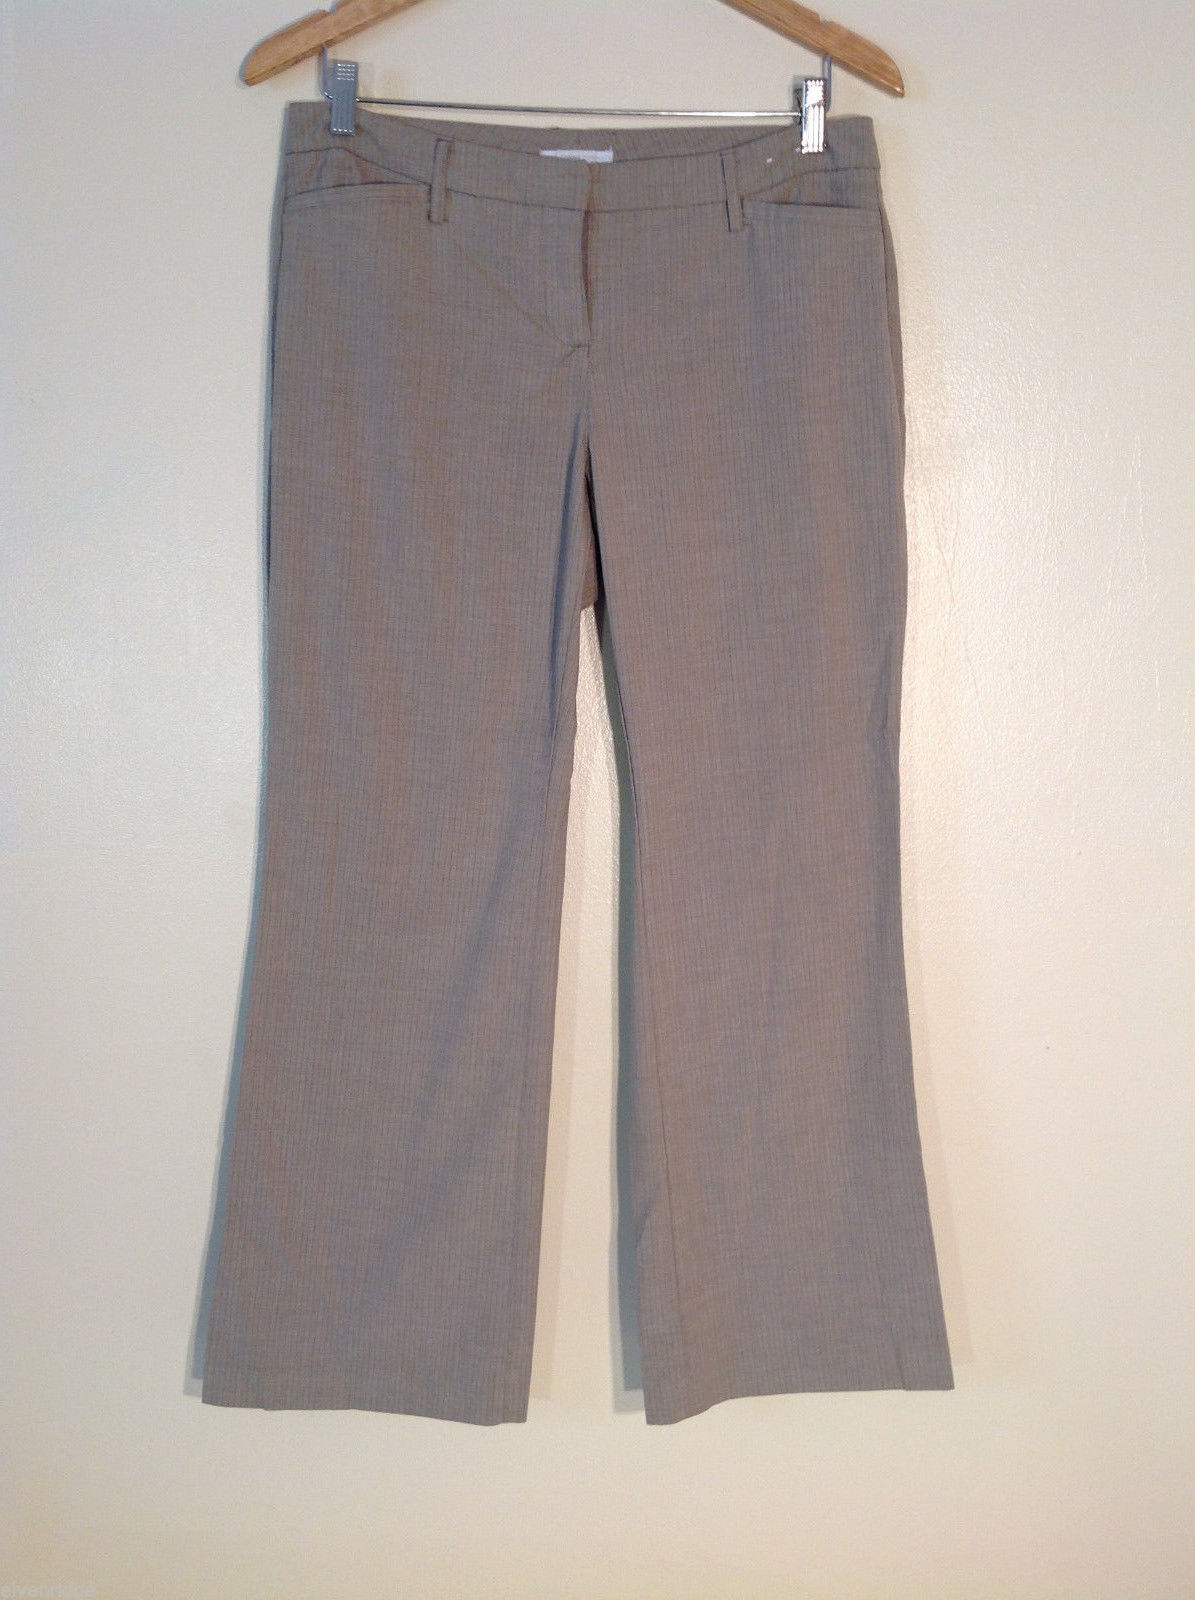 New York & Company Women's Petite Size 8 Pants Brown w/ Pinstripes Work Office